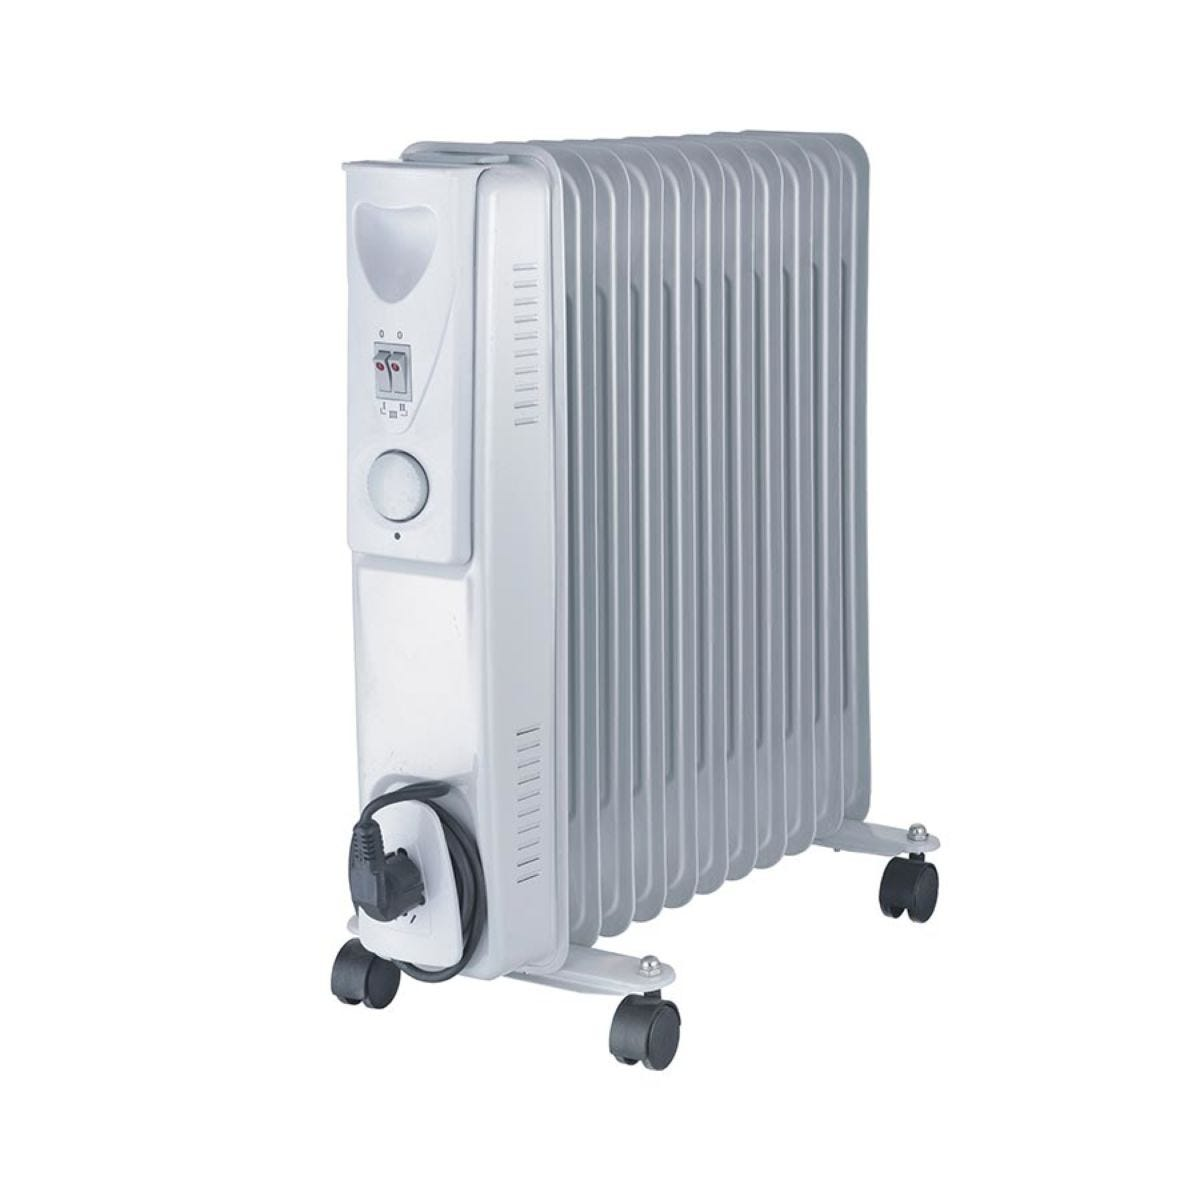 2500W Oil-Filled Radiator